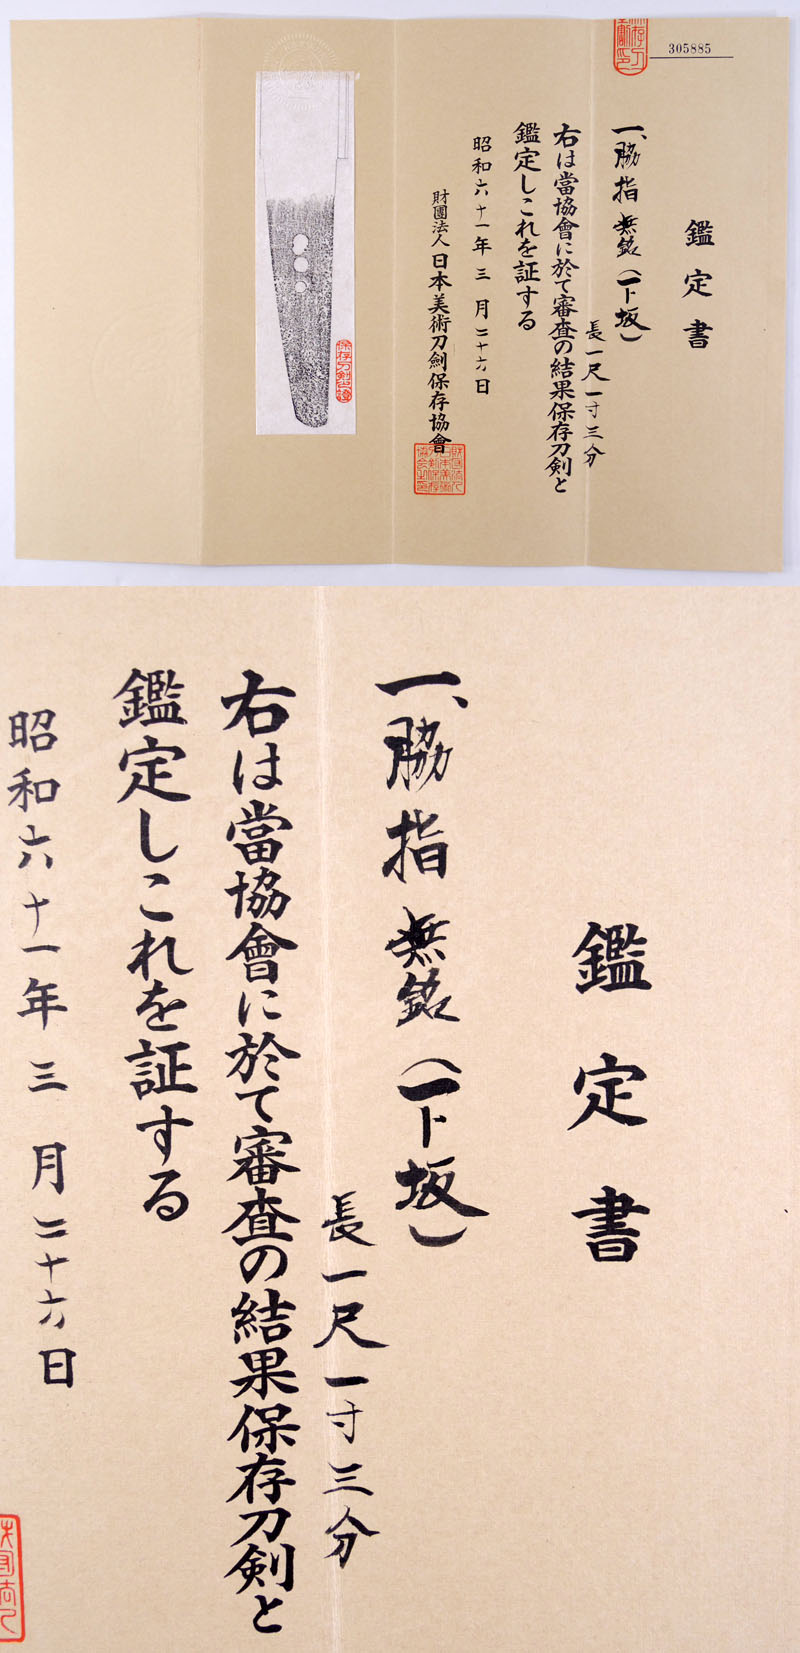 無銘(下坂) Picture of Certificate